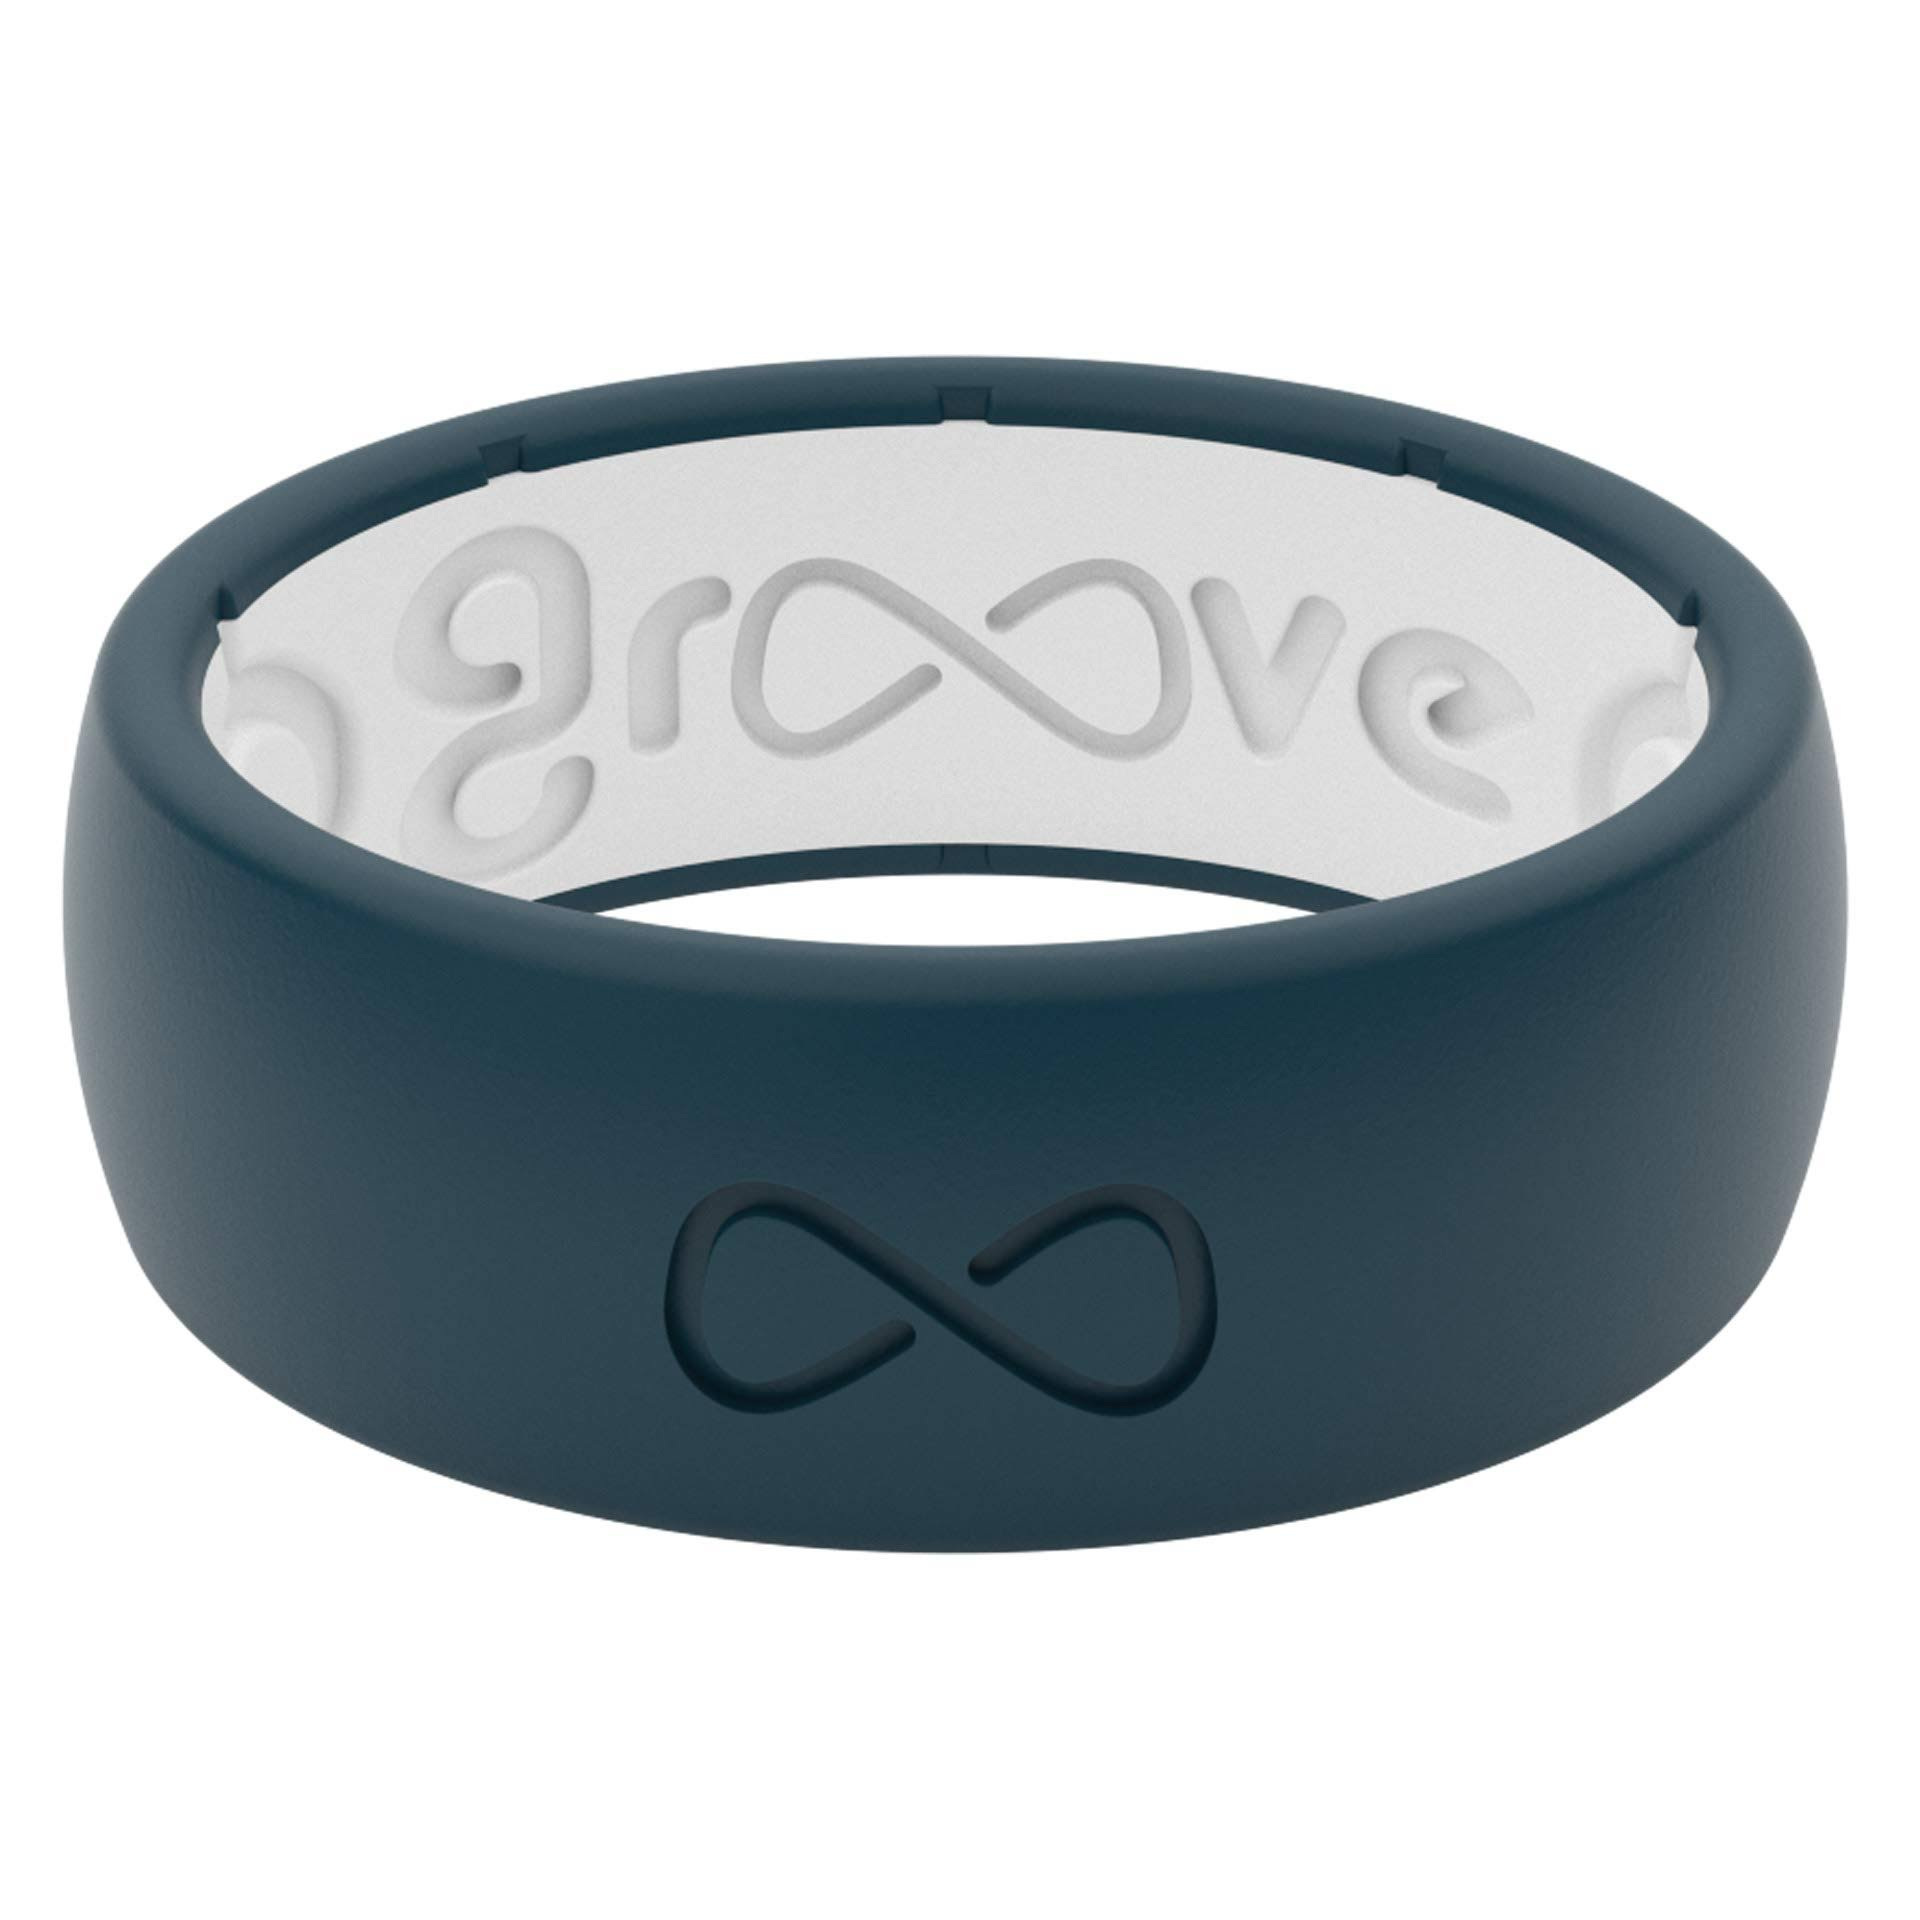 Groove Life Original Silicone Ring - Anchor blue/Snow, Size 10